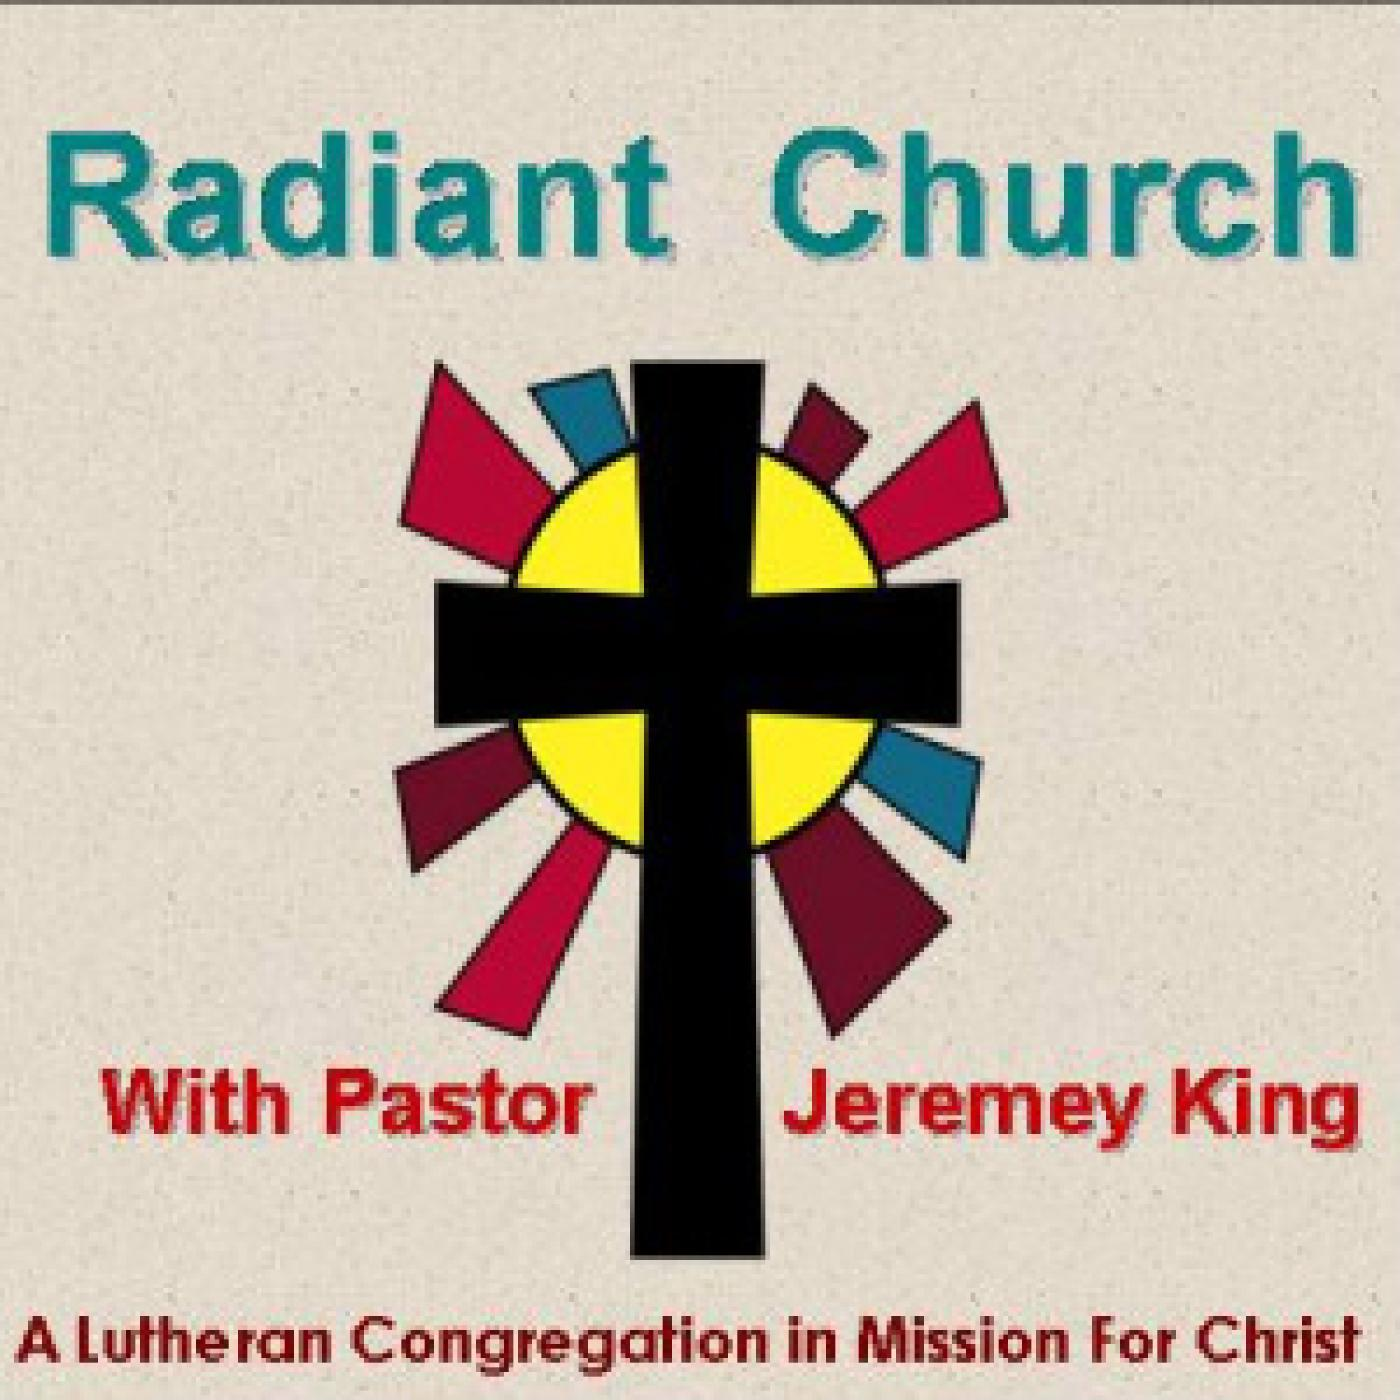 Radiant Church Sermons